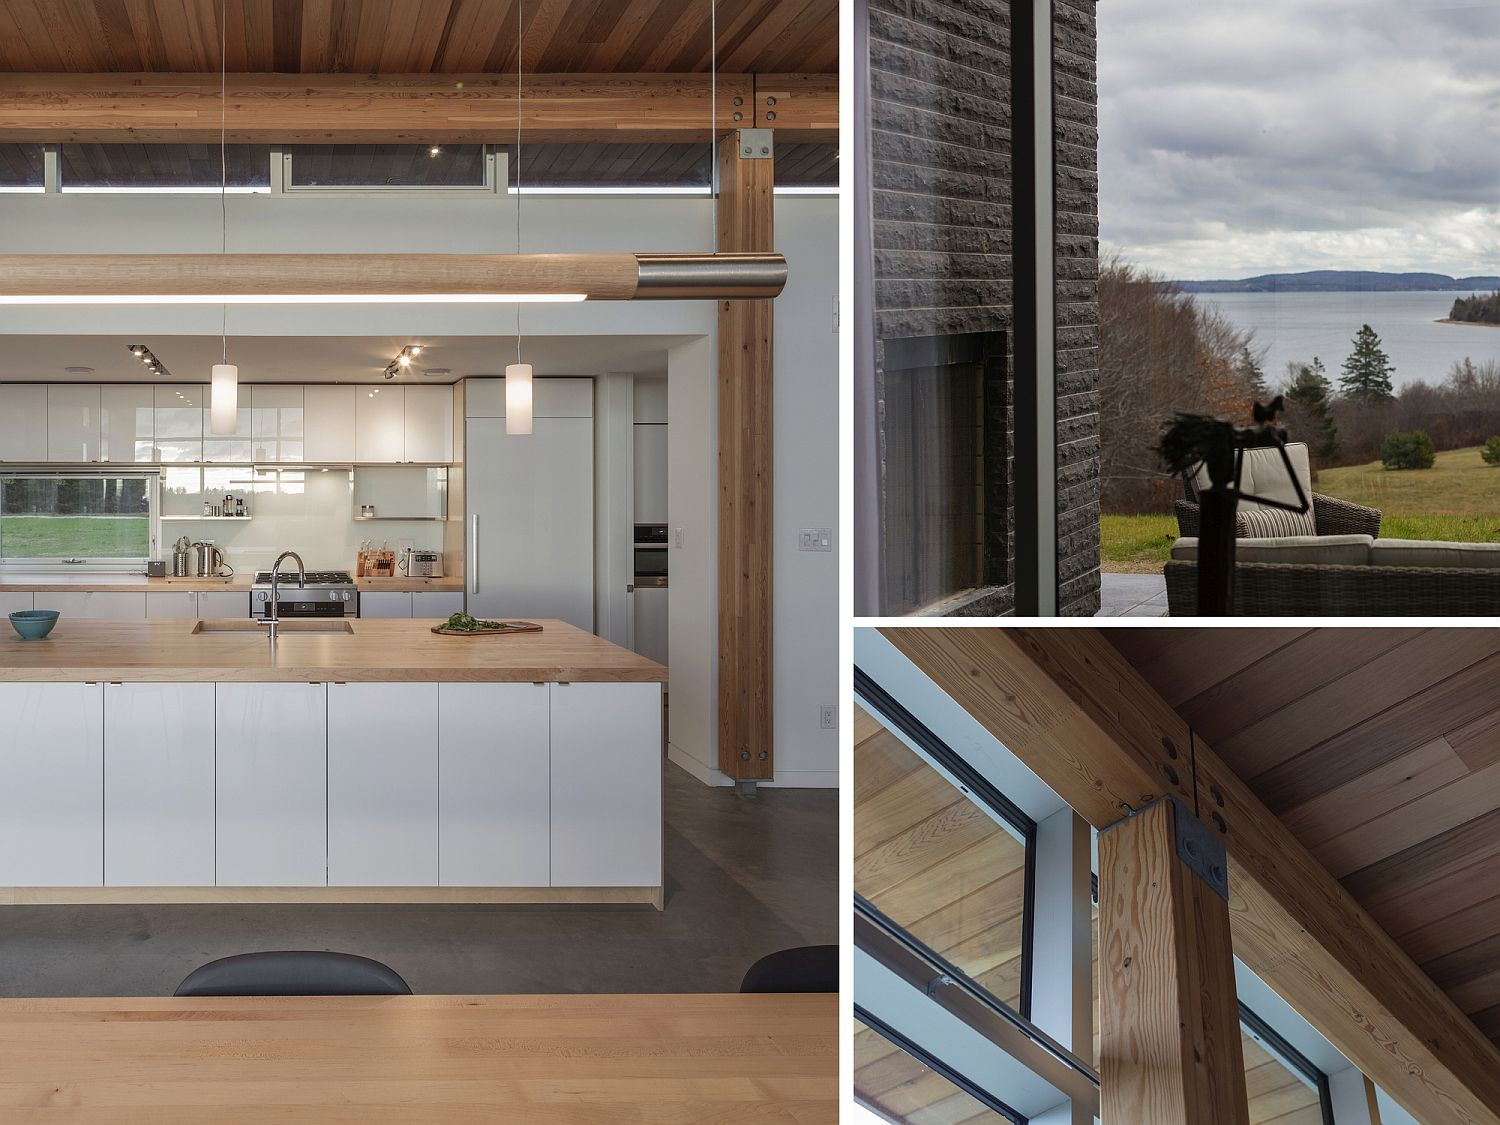 Warm wooden tones and lovely ocean views greet you at the Candian home